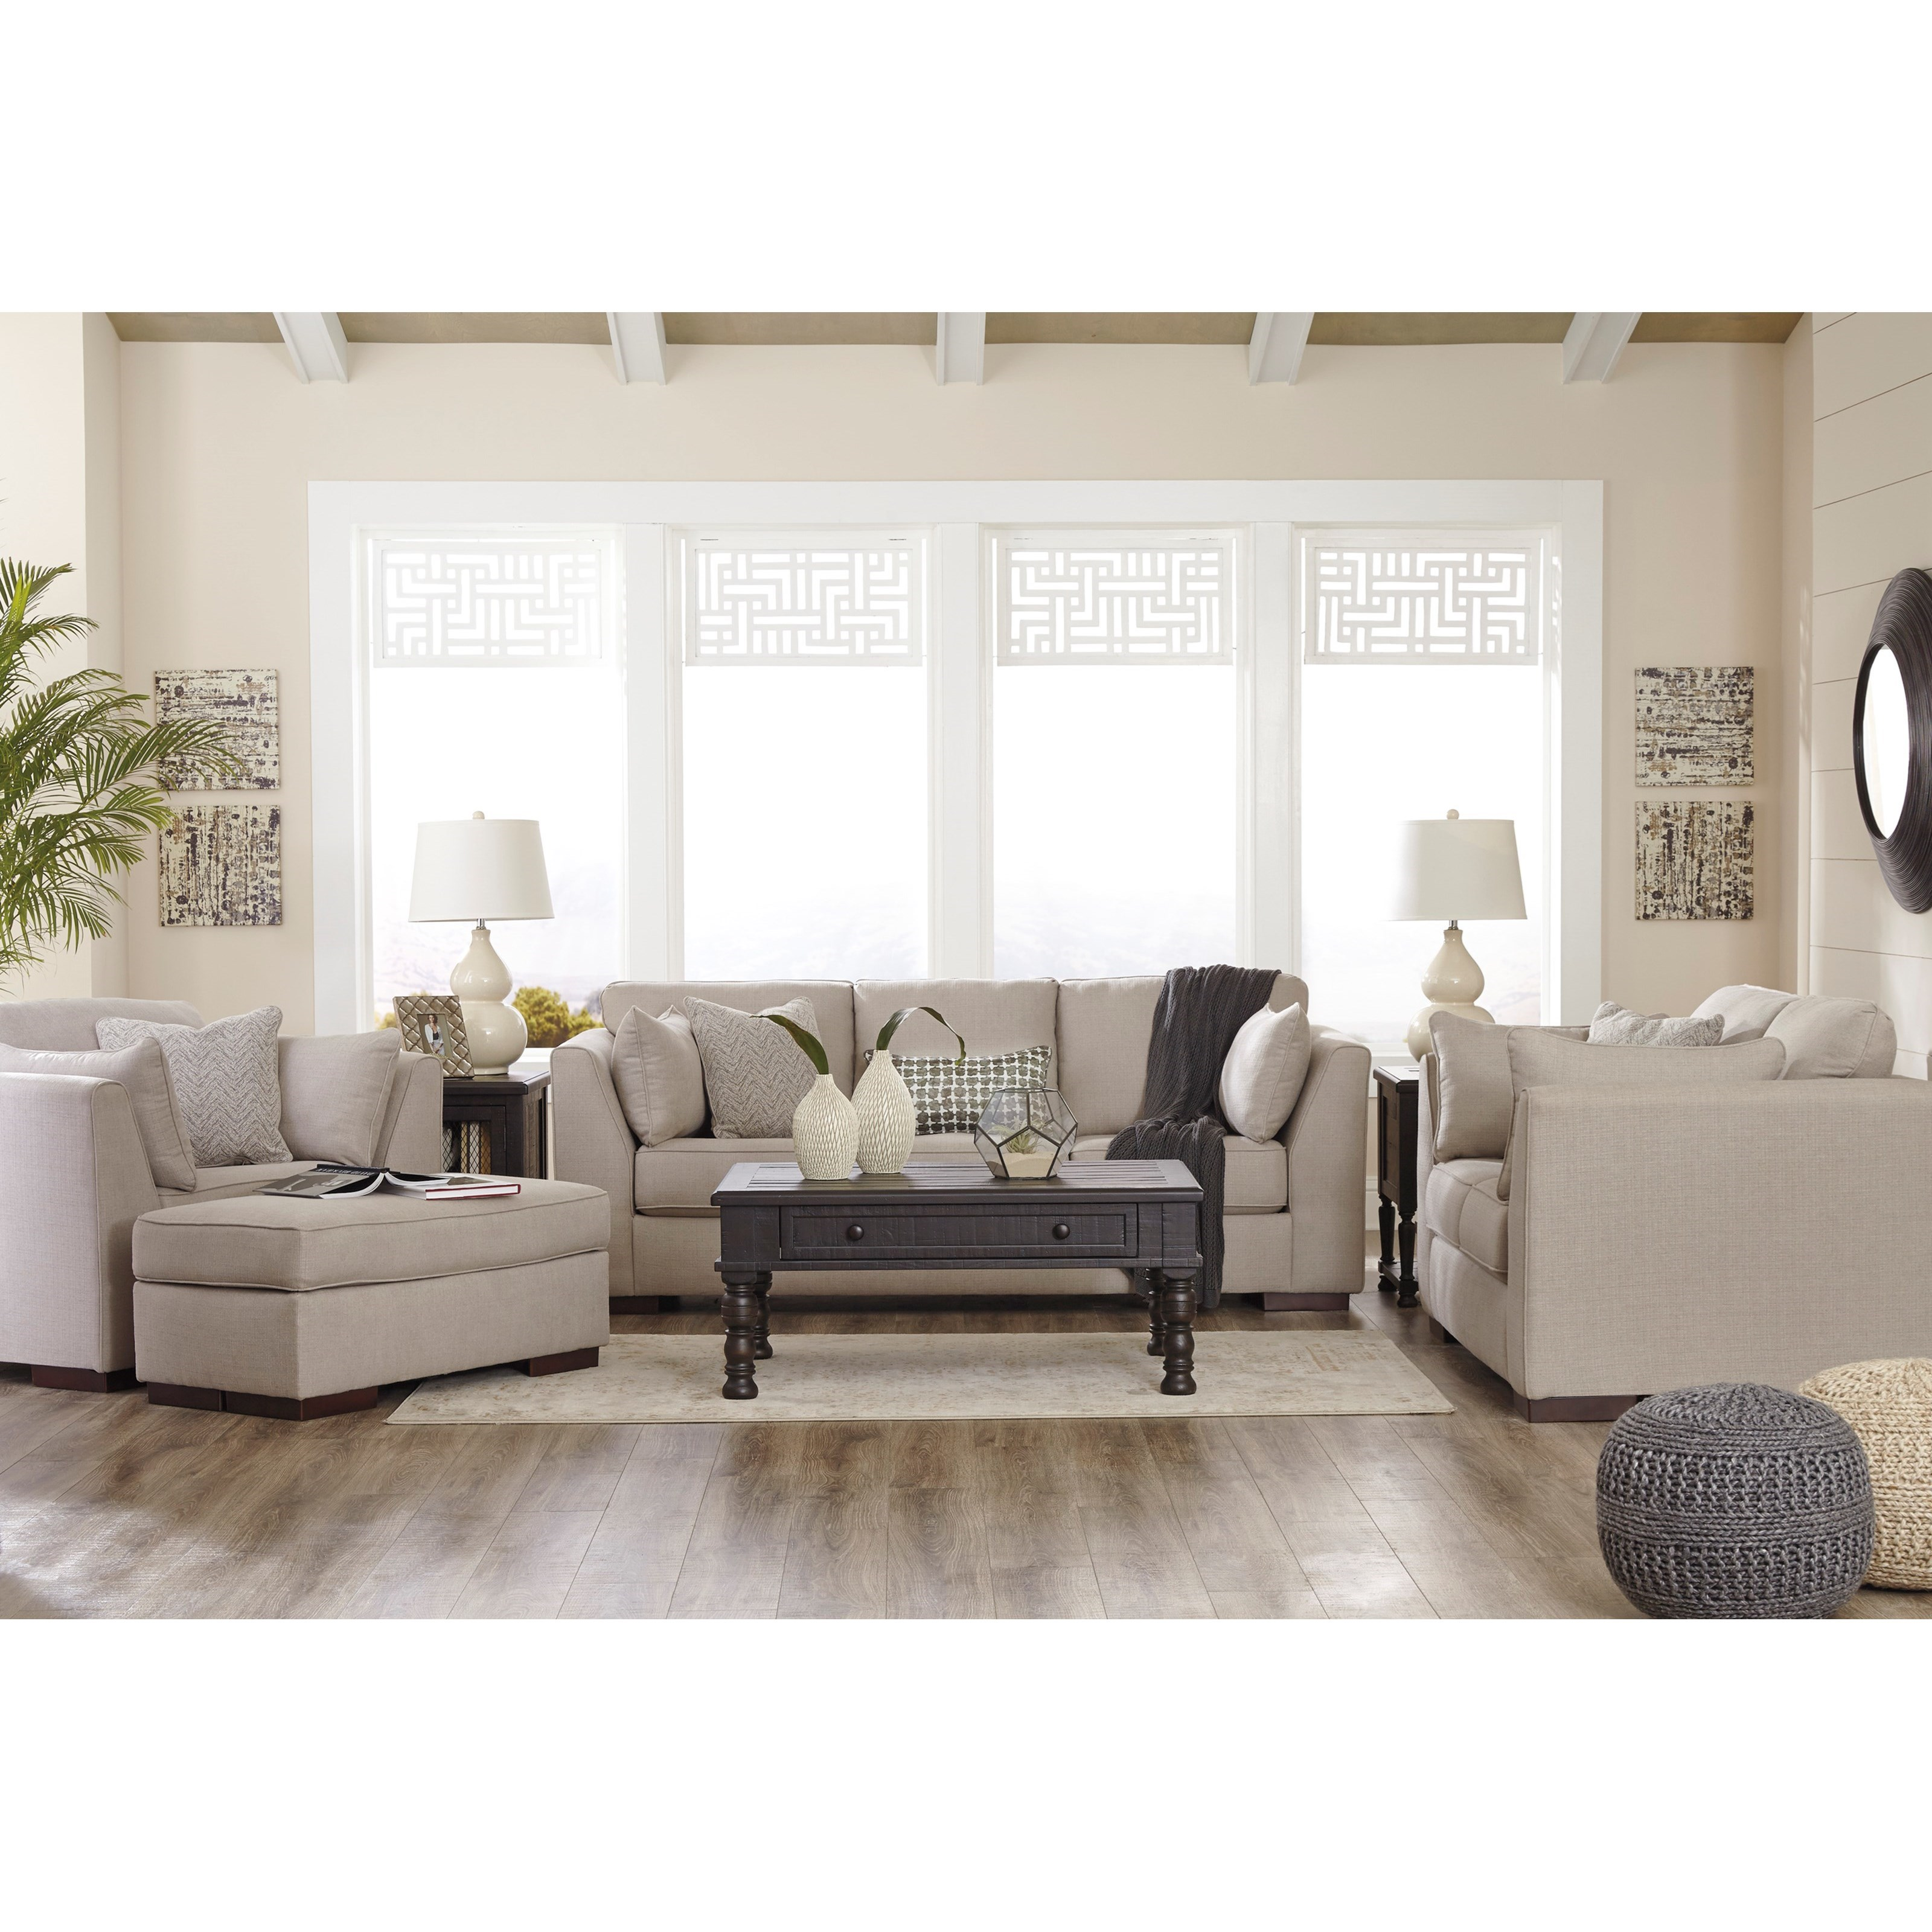 Benchcraft Lainier Stationary Living Room Group - Item Number: 54202 Living Room Group 3